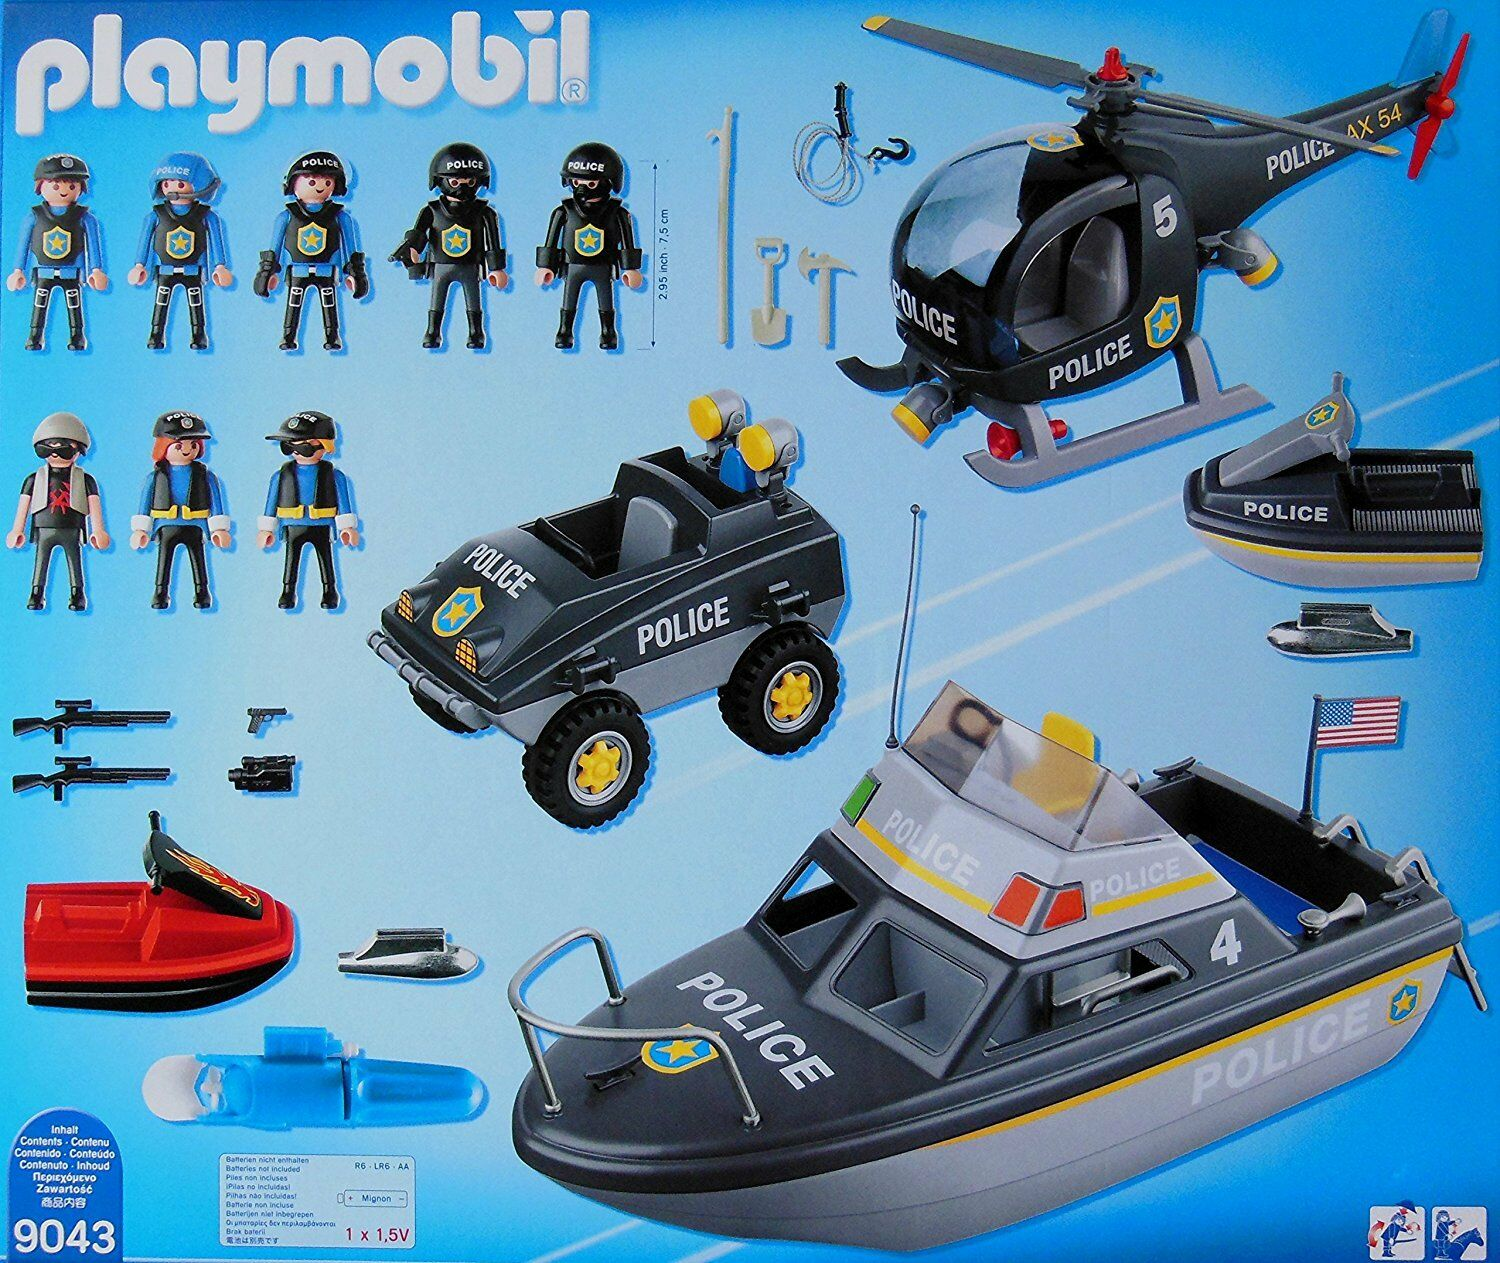 Playmobil Playmobil Playmobil City Action 9043 Set de Policía (Fuerzas Especiales) - New and sealed a507bd